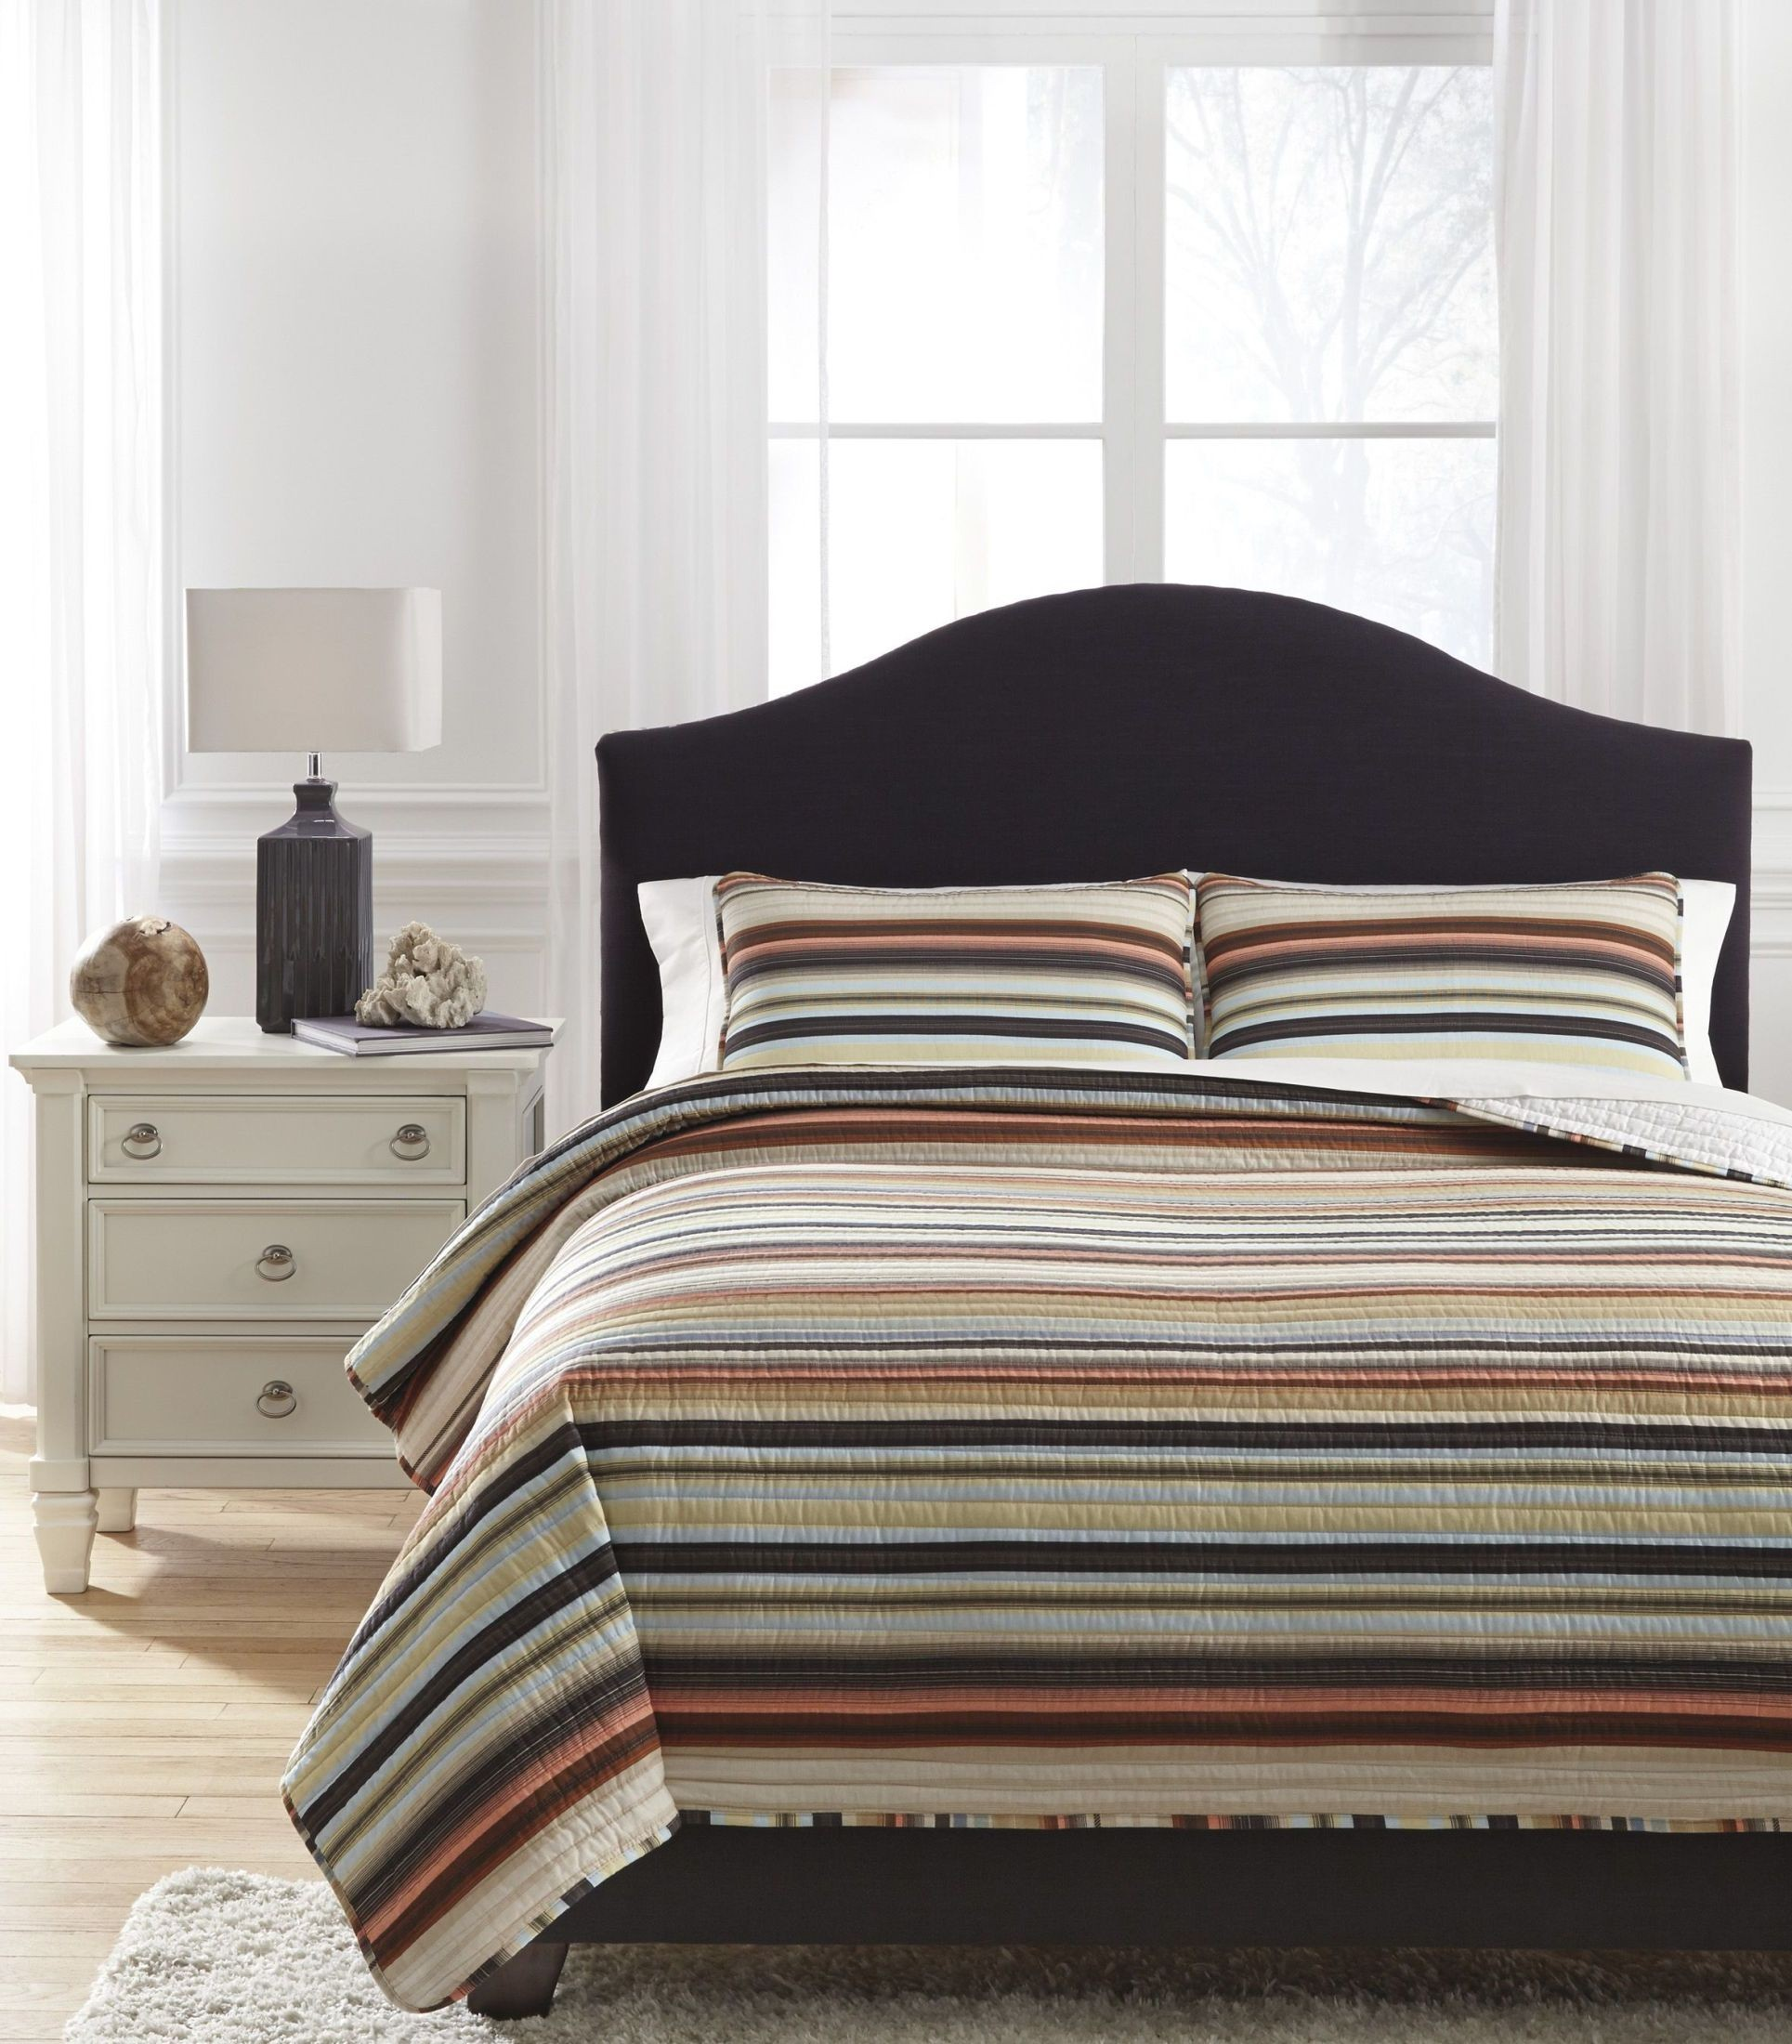 Wiley Multi Queen Quilt Set From Ashley Coleman Furniture